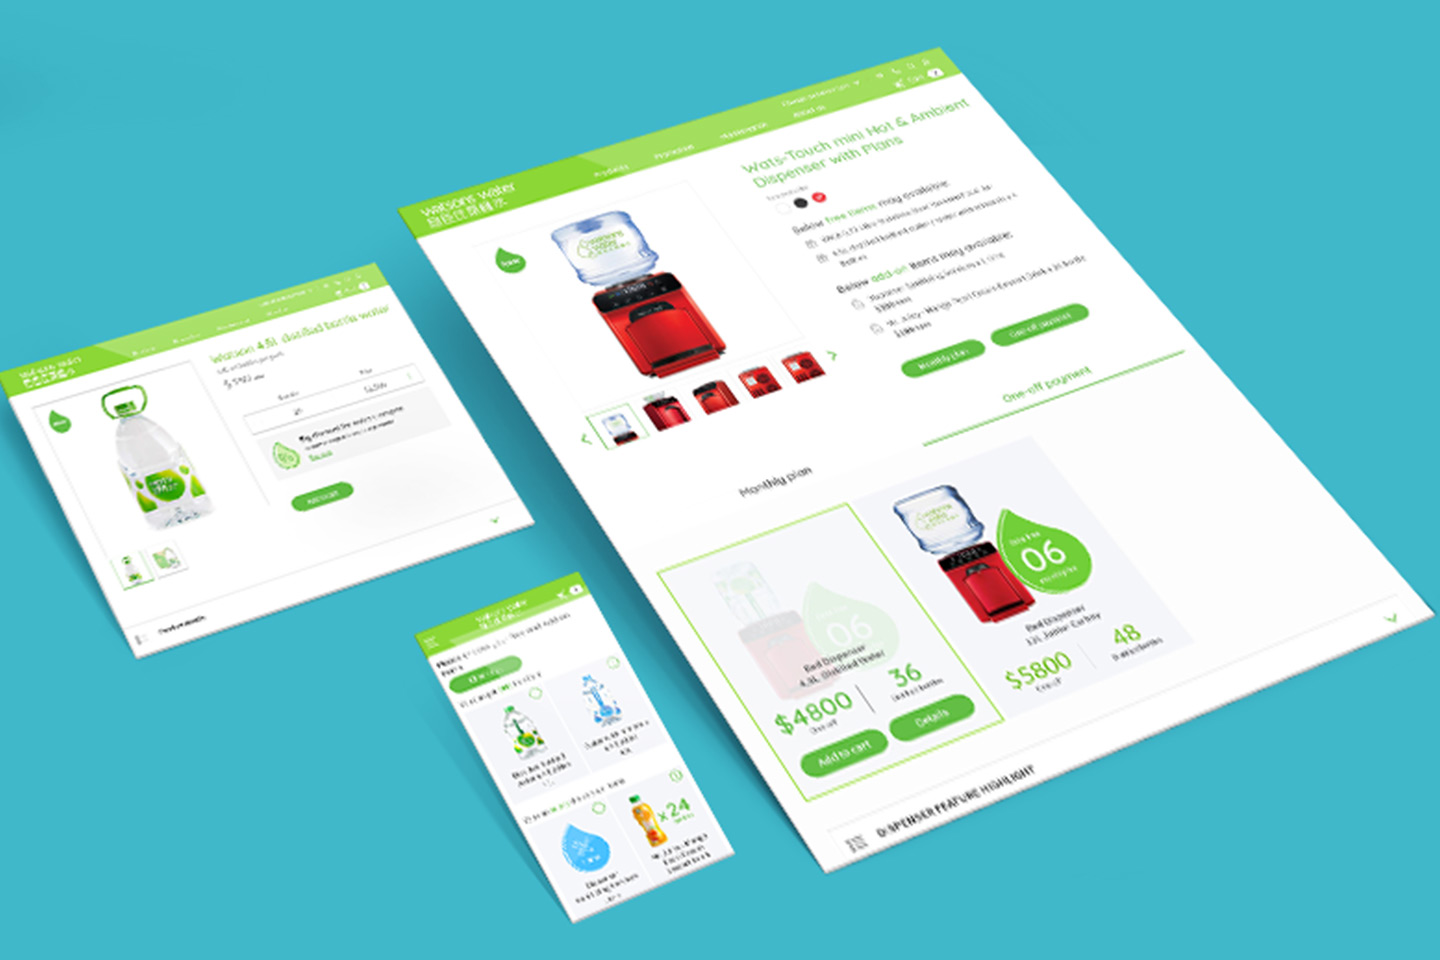 Watsons water eshop mobile app and website